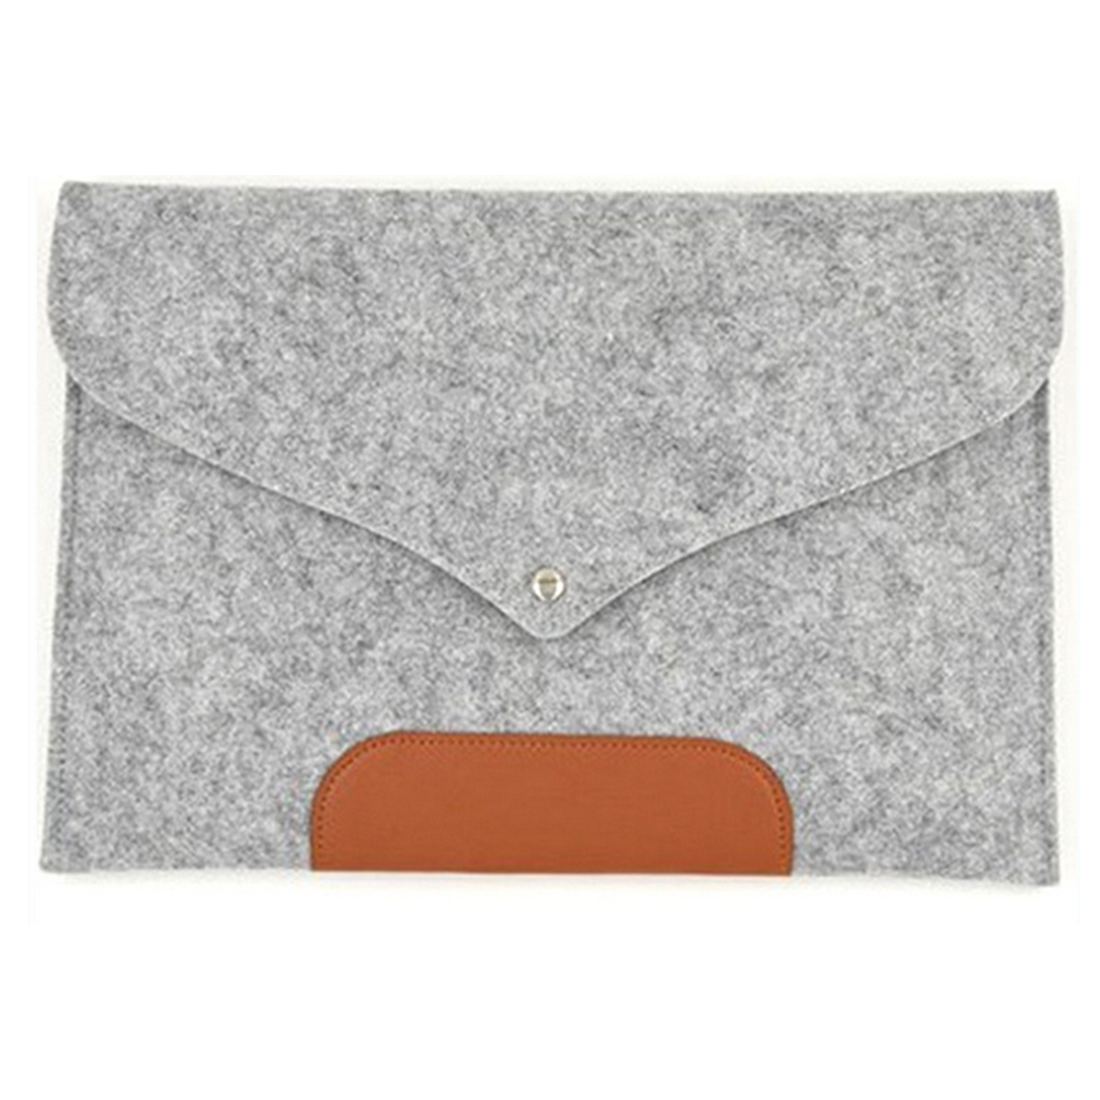 NOYOKERE Pouch Bag Laptop Cover Case For Macbook Pro/Air/Retina Notebook Sleeve bag 111315 Ultrabook Sleeve Pouch Bag